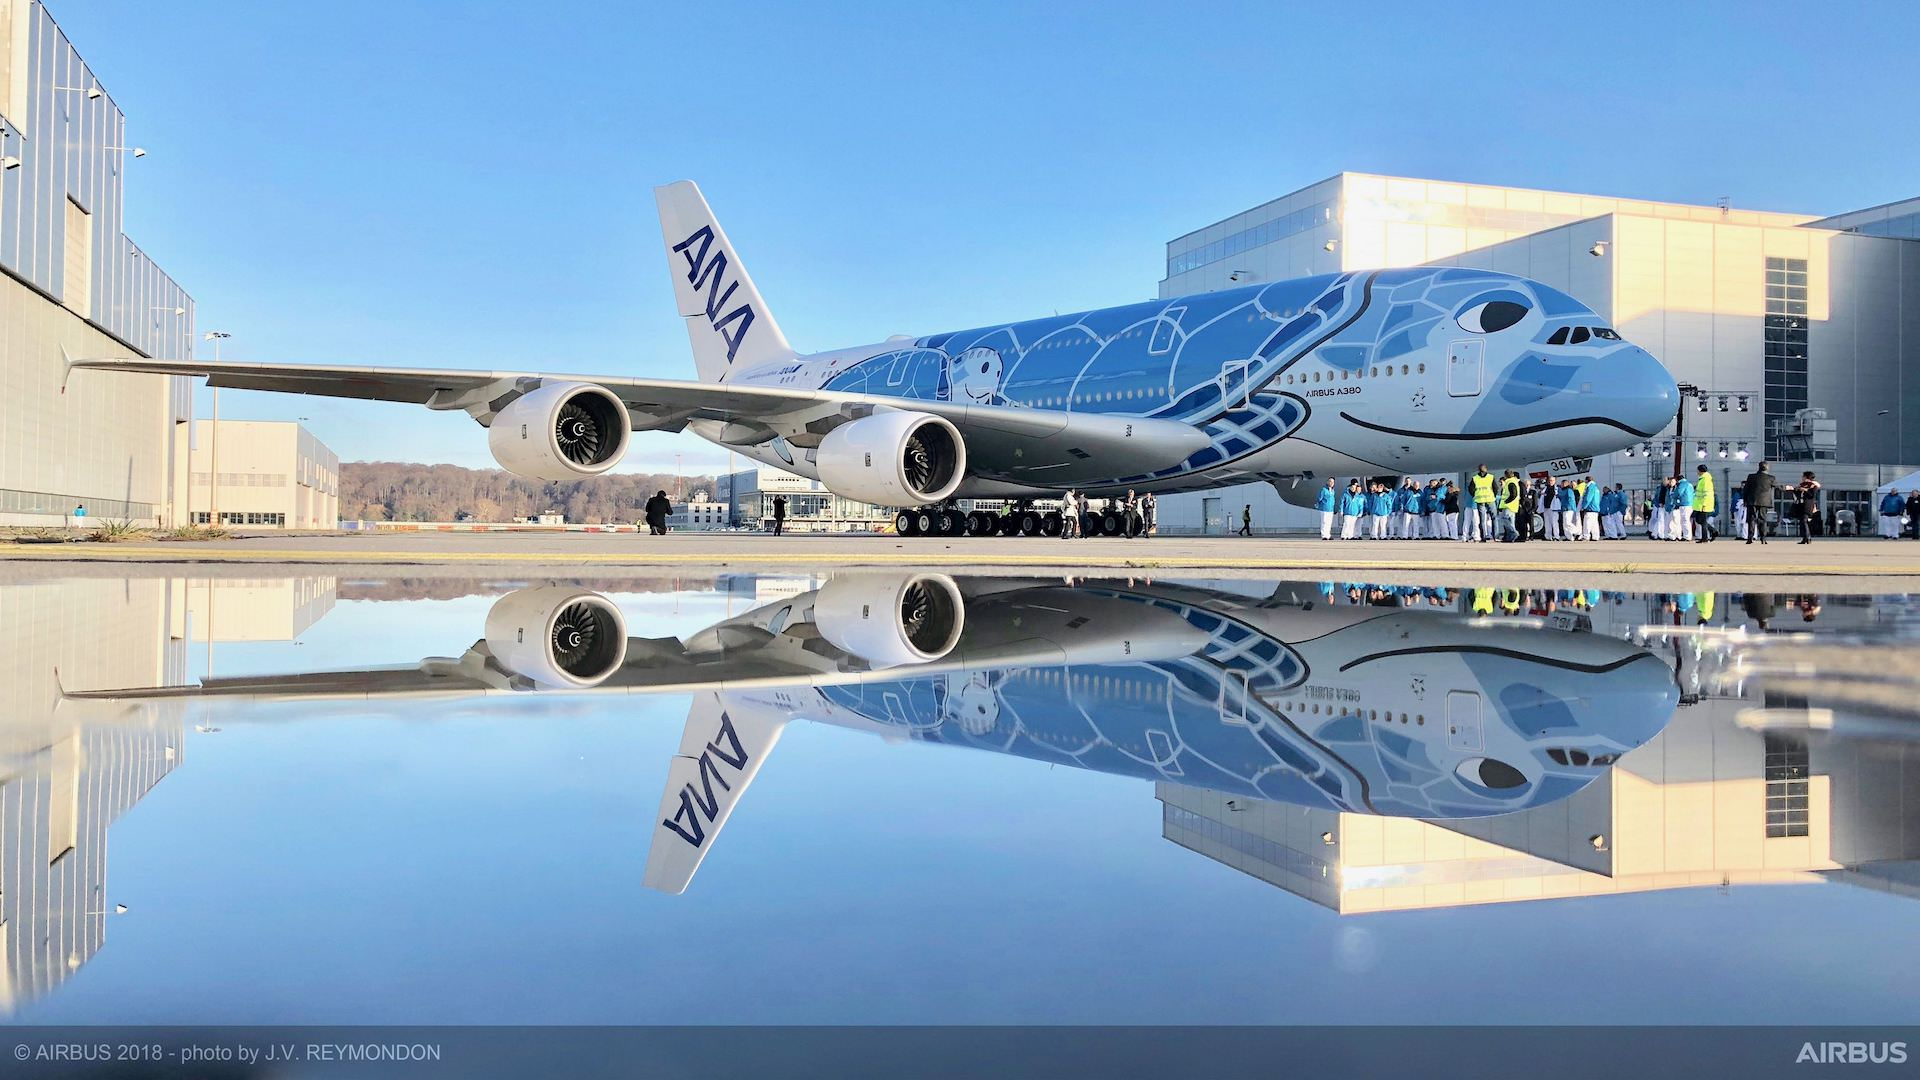 First-A380-ANA-rolls-out-of-paintshop-2